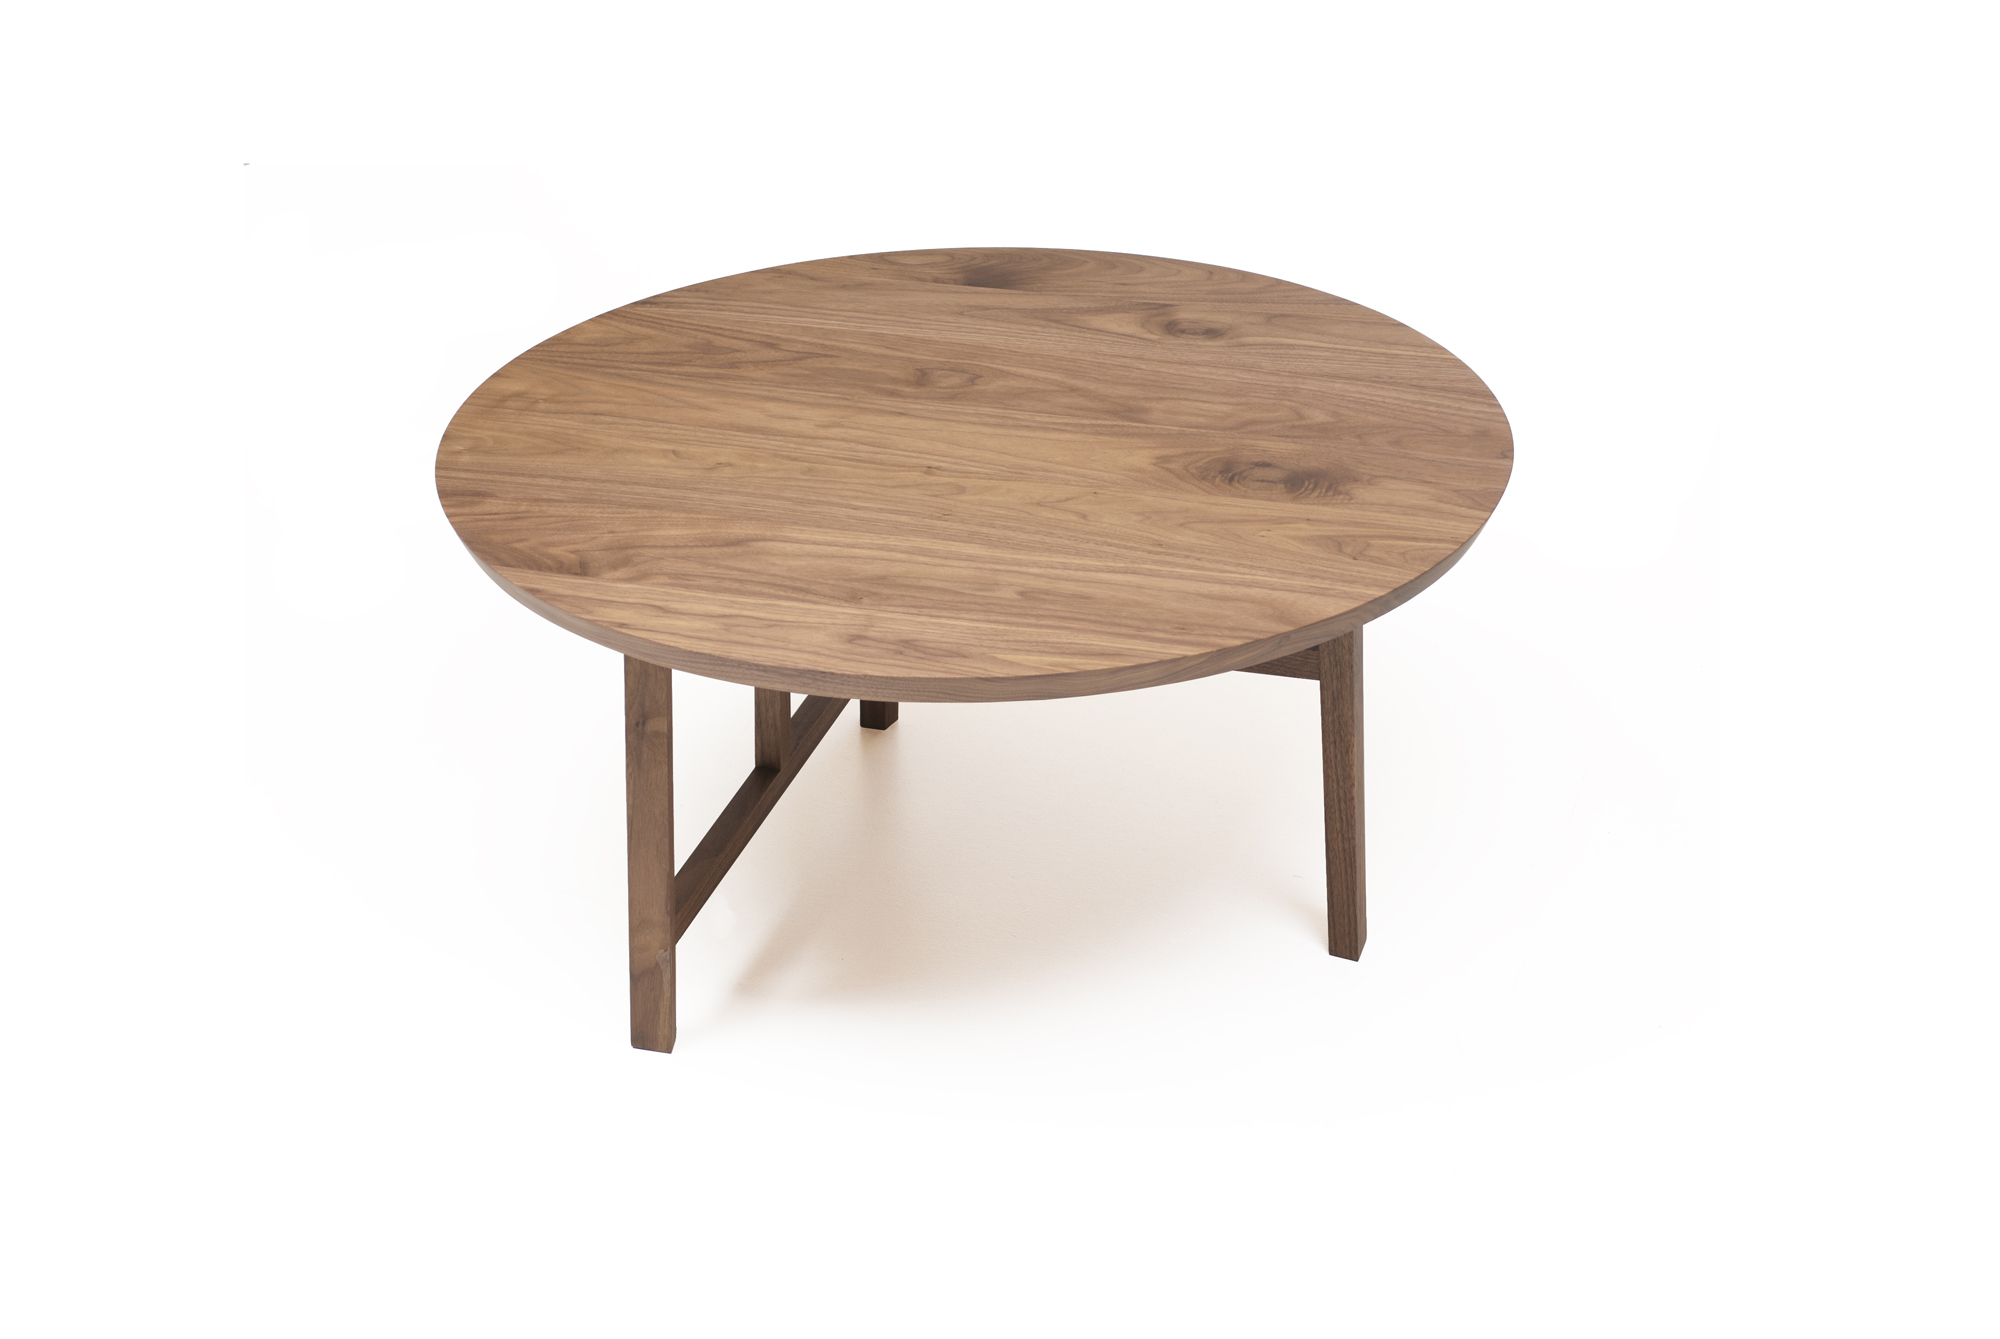 Small Round Coffee Table 754m Trio Round Coffee Table Discount Coffee Tables Round Coffee Tables Living Room (View 13 of 18)